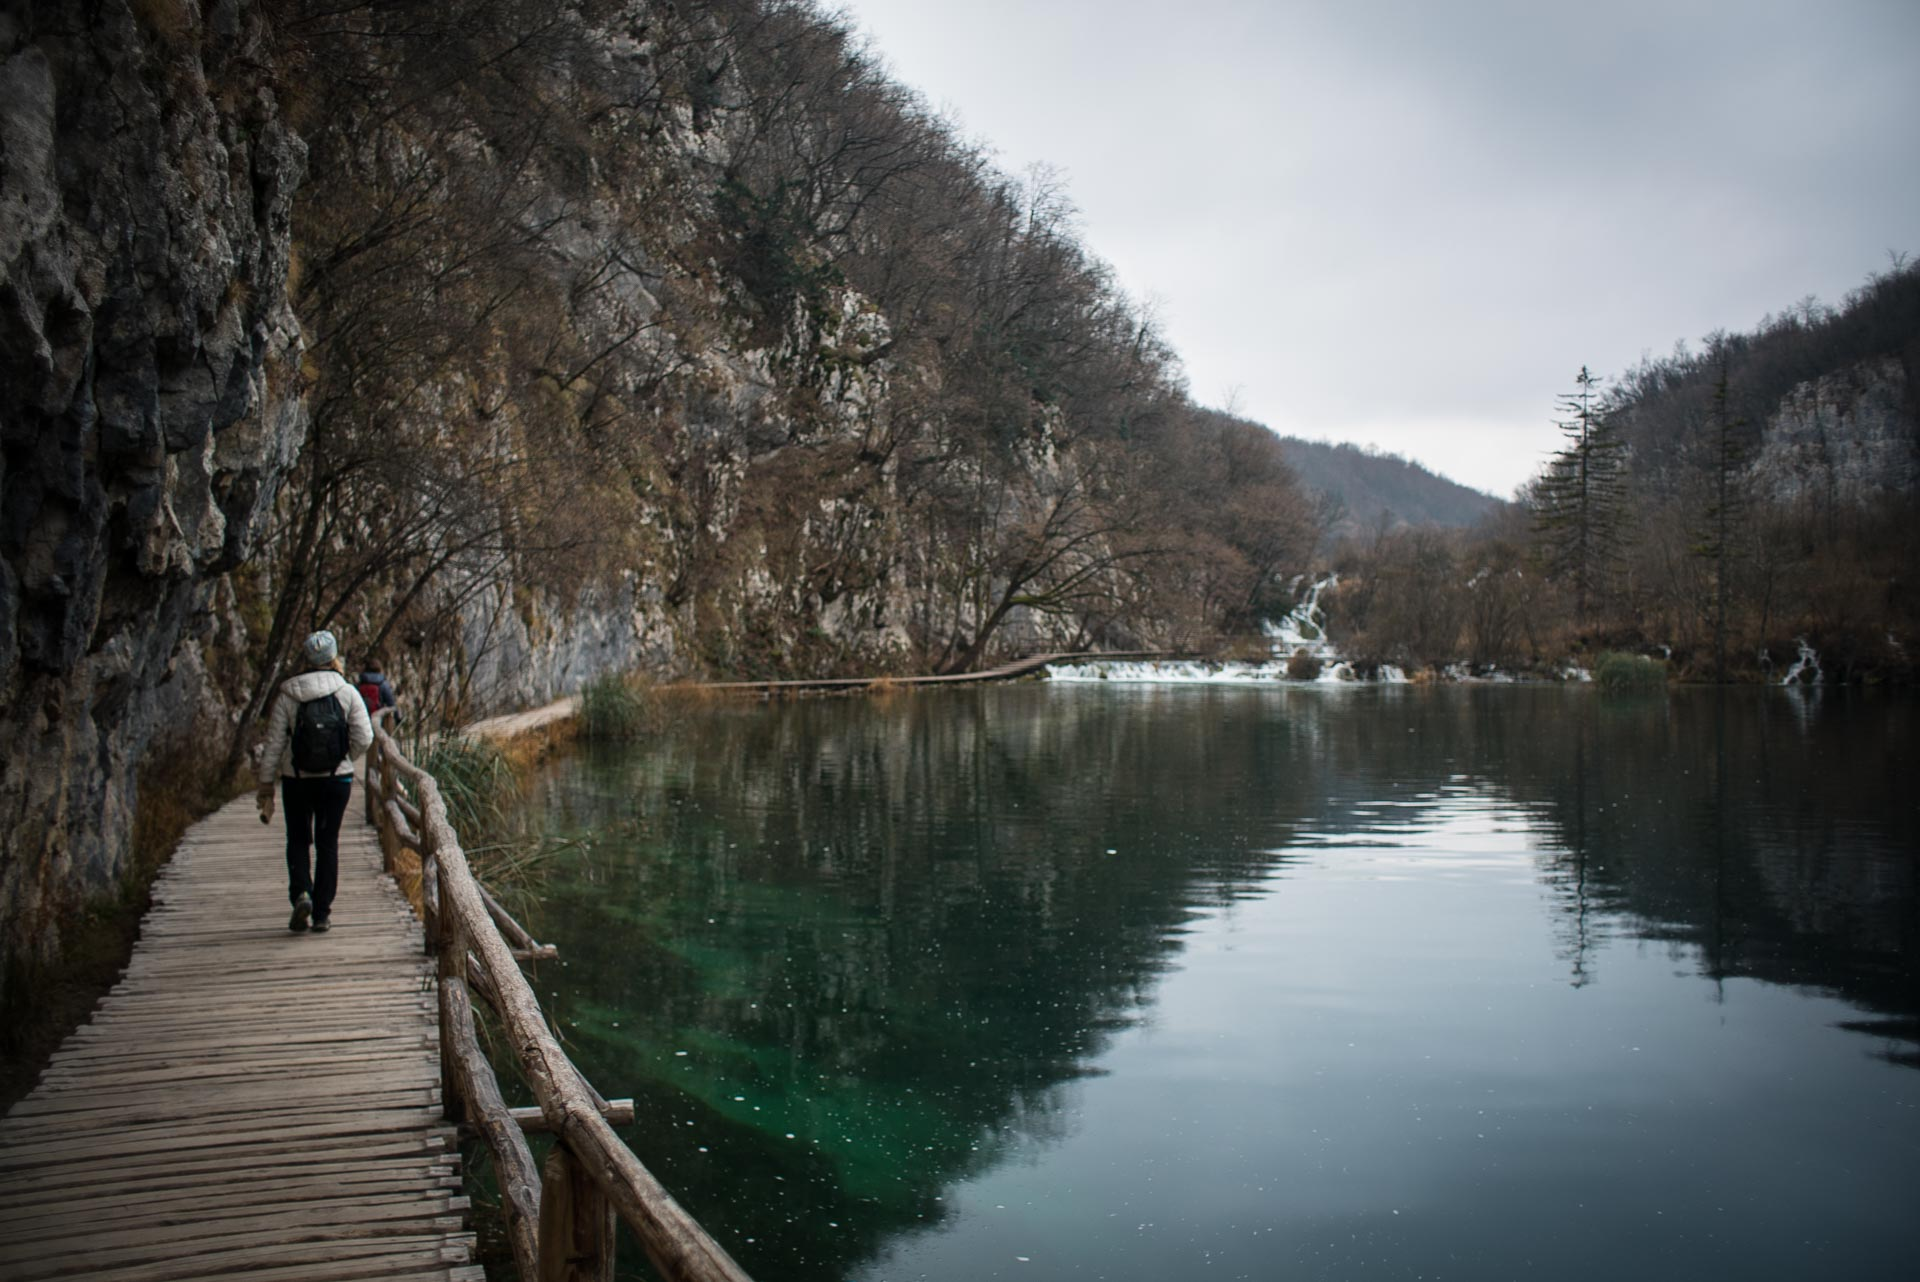 Plitvice National Park is known for boardwalks